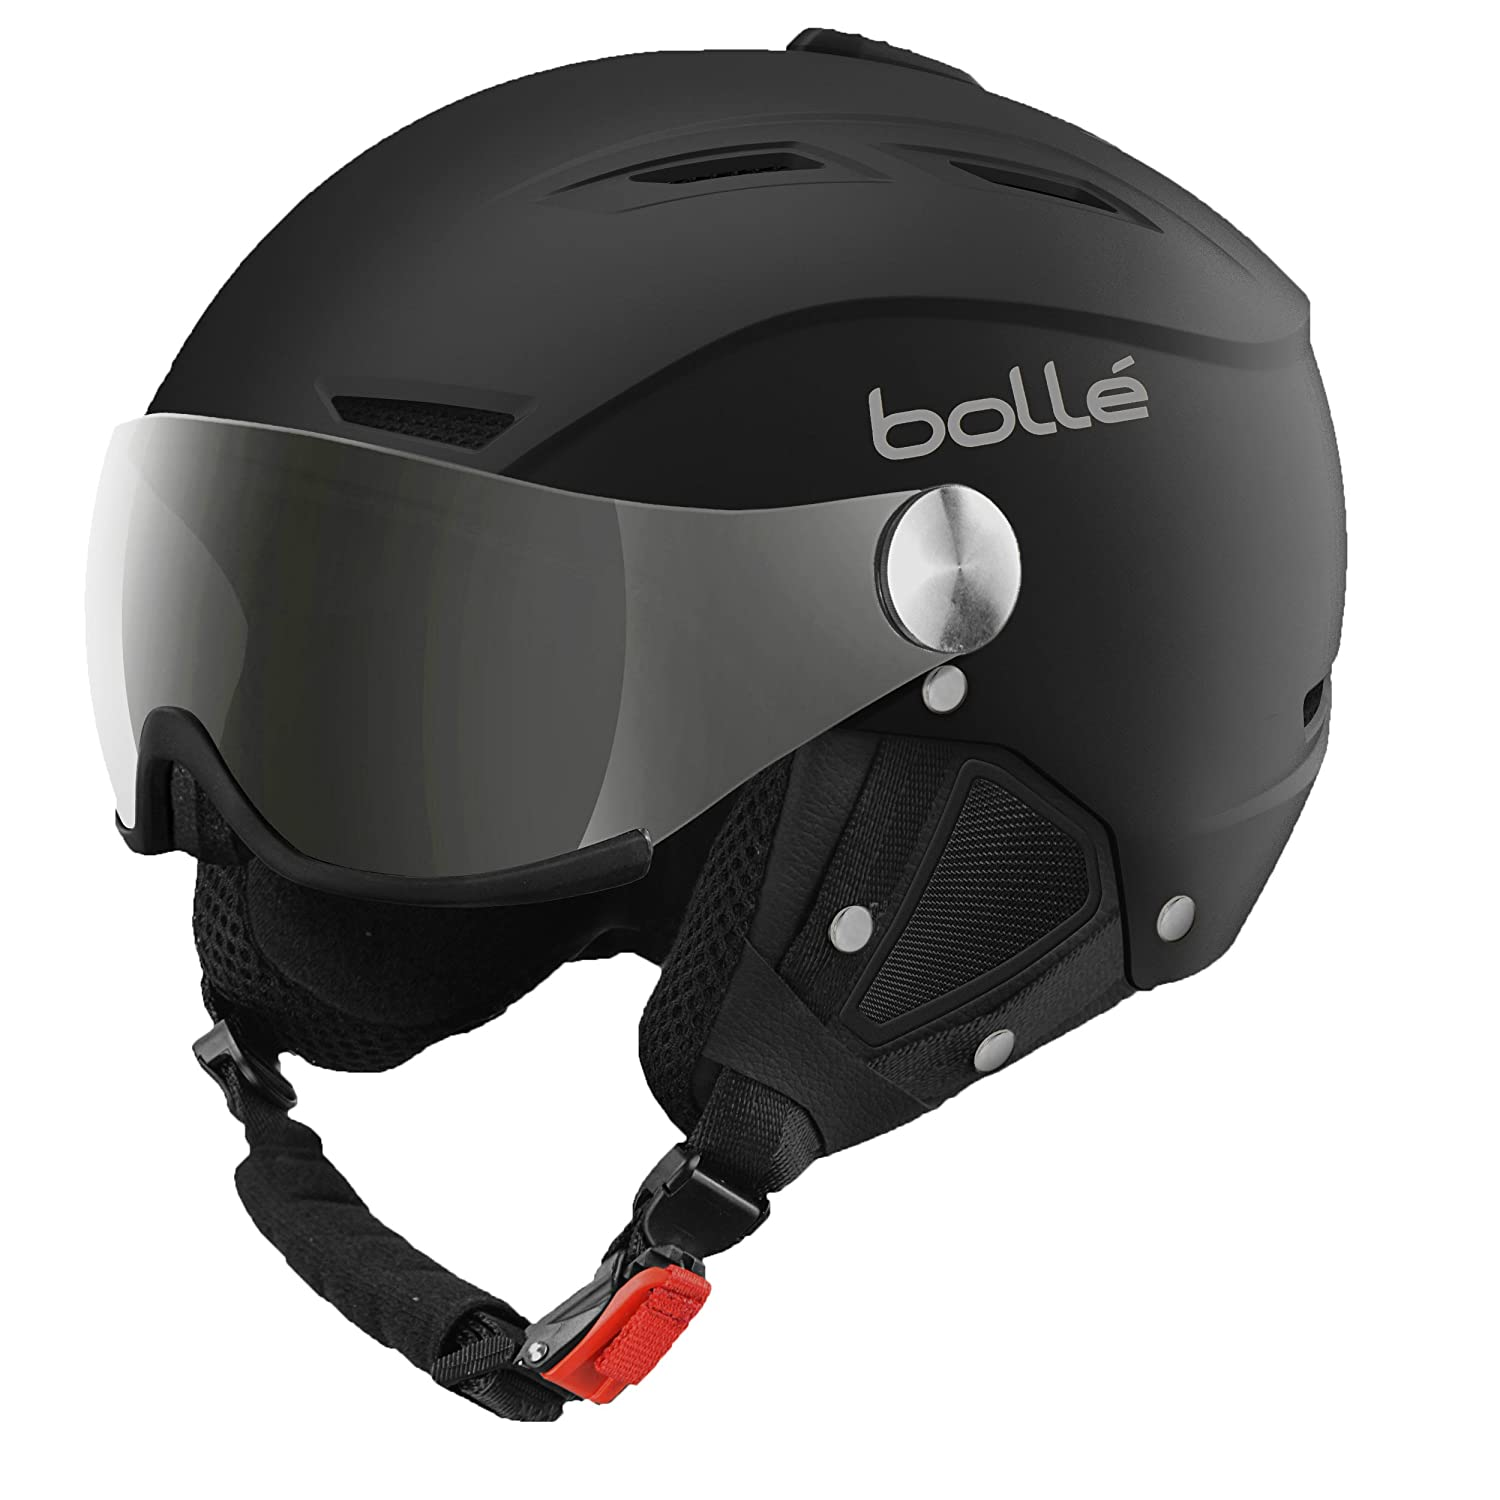 Amazon.com: Bolle Backline Visor Helmet - Black / Silver 5961cm: Sports & Outdoors